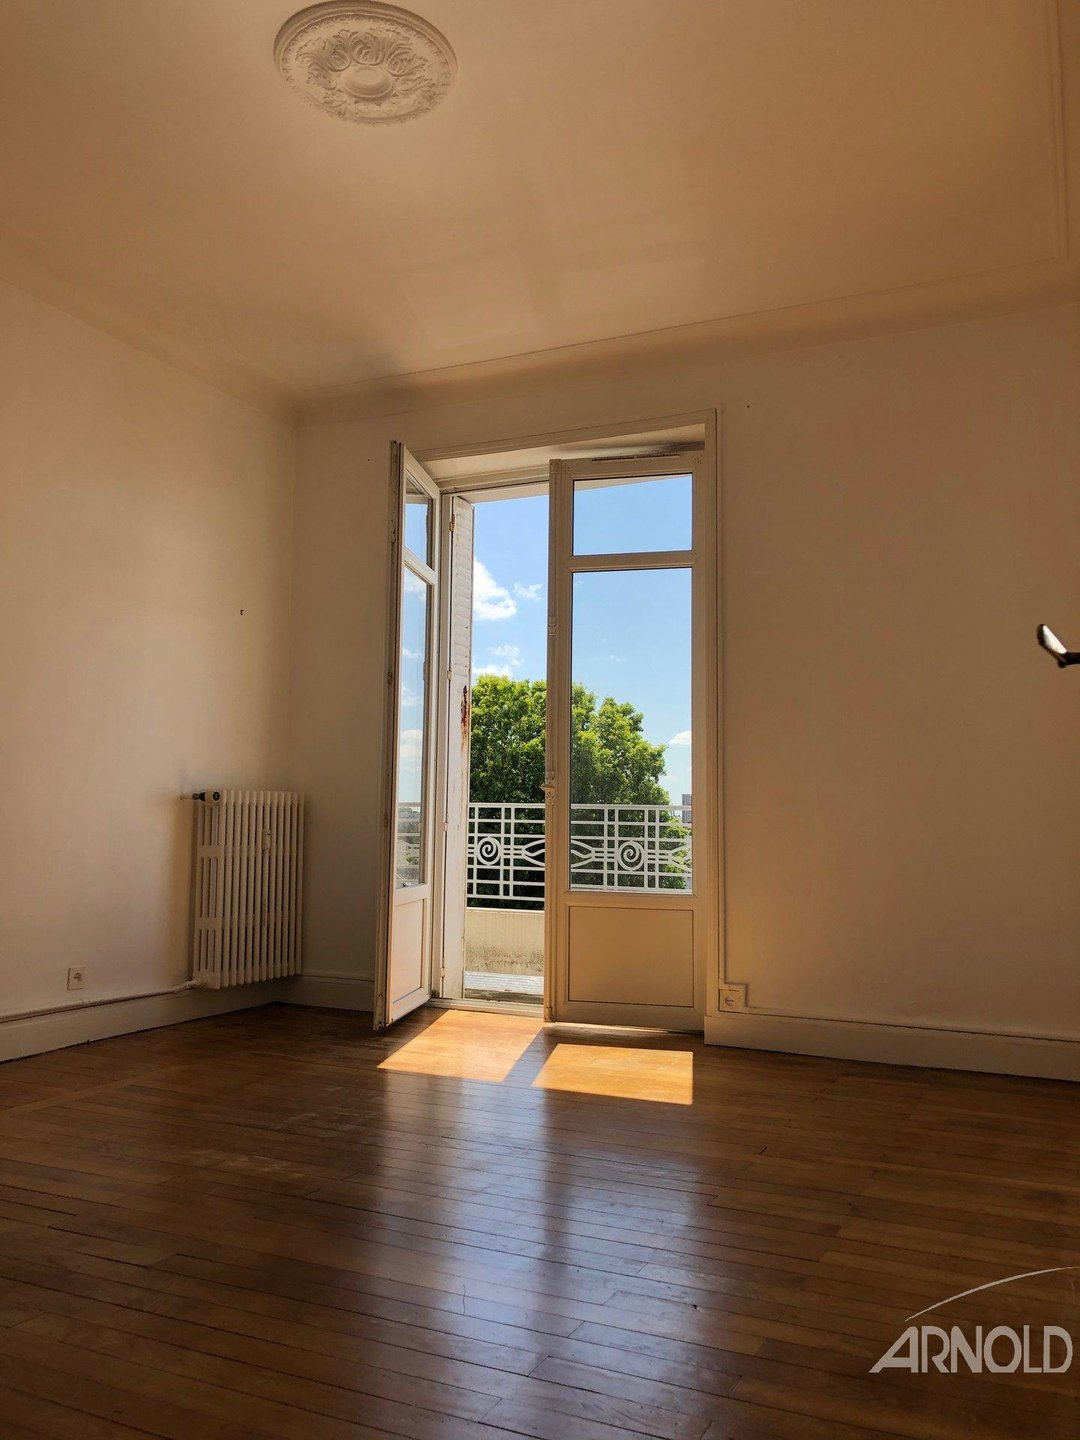 Appartement 3 chambres - Nantes / Monselet,